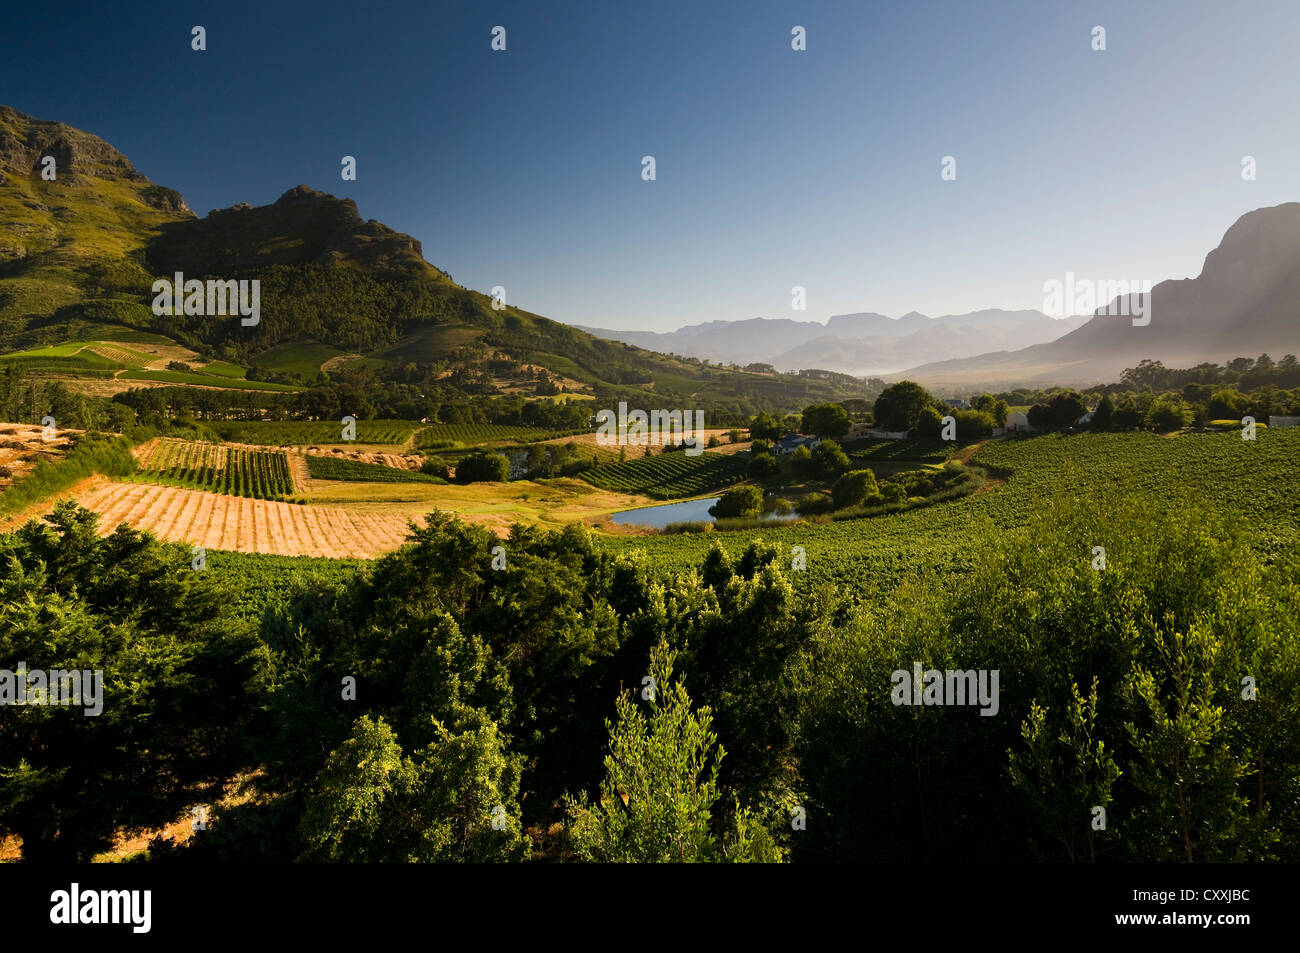 Landscape, vineyards, Stellenbosch area, Western Cape, South Africa, Africa - Stock Image